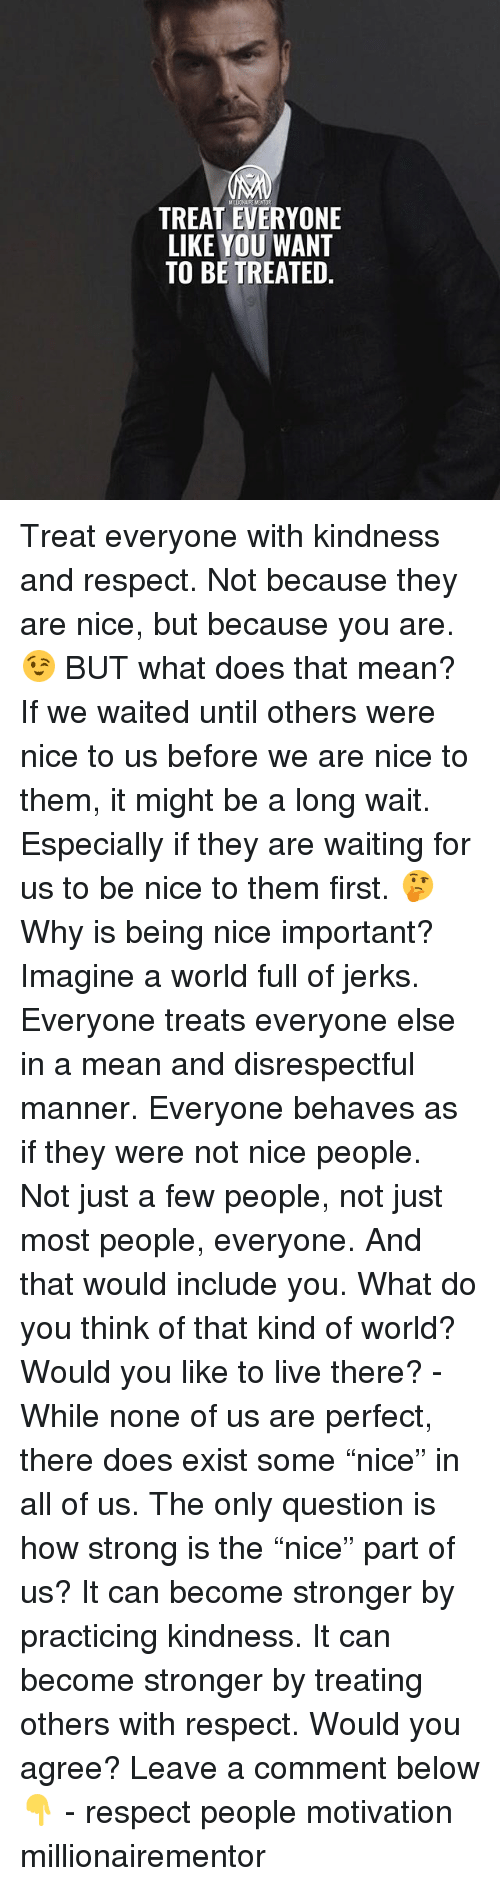 "Memes, Respect, and Live: MELOHURE MENTOR  TREAT EVERYONE  LIKE YOU WANT  TO BE TREATED. Treat everyone with kindness and respect. Not because they are nice, but because you are. 😉 BUT what does that mean? If we waited until others were nice to us before we are nice to them, it might be a long wait. Especially if they are waiting for us to be nice to them first. 🤔 Why is being nice important? Imagine a world full of jerks. Everyone treats everyone else in a mean and disrespectful manner. Everyone behaves as if they were not nice people. Not just a few people, not just most people, everyone. And that would include you. What do you think of that kind of world? Would you like to live there? - While none of us are perfect, there does exist some ""nice"" in all of us. The only question is how strong is the ""nice"" part of us? It can become stronger by practicing kindness. It can become stronger by treating others with respect. Would you agree? Leave a comment below 👇 - respect people motivation millionairementor"